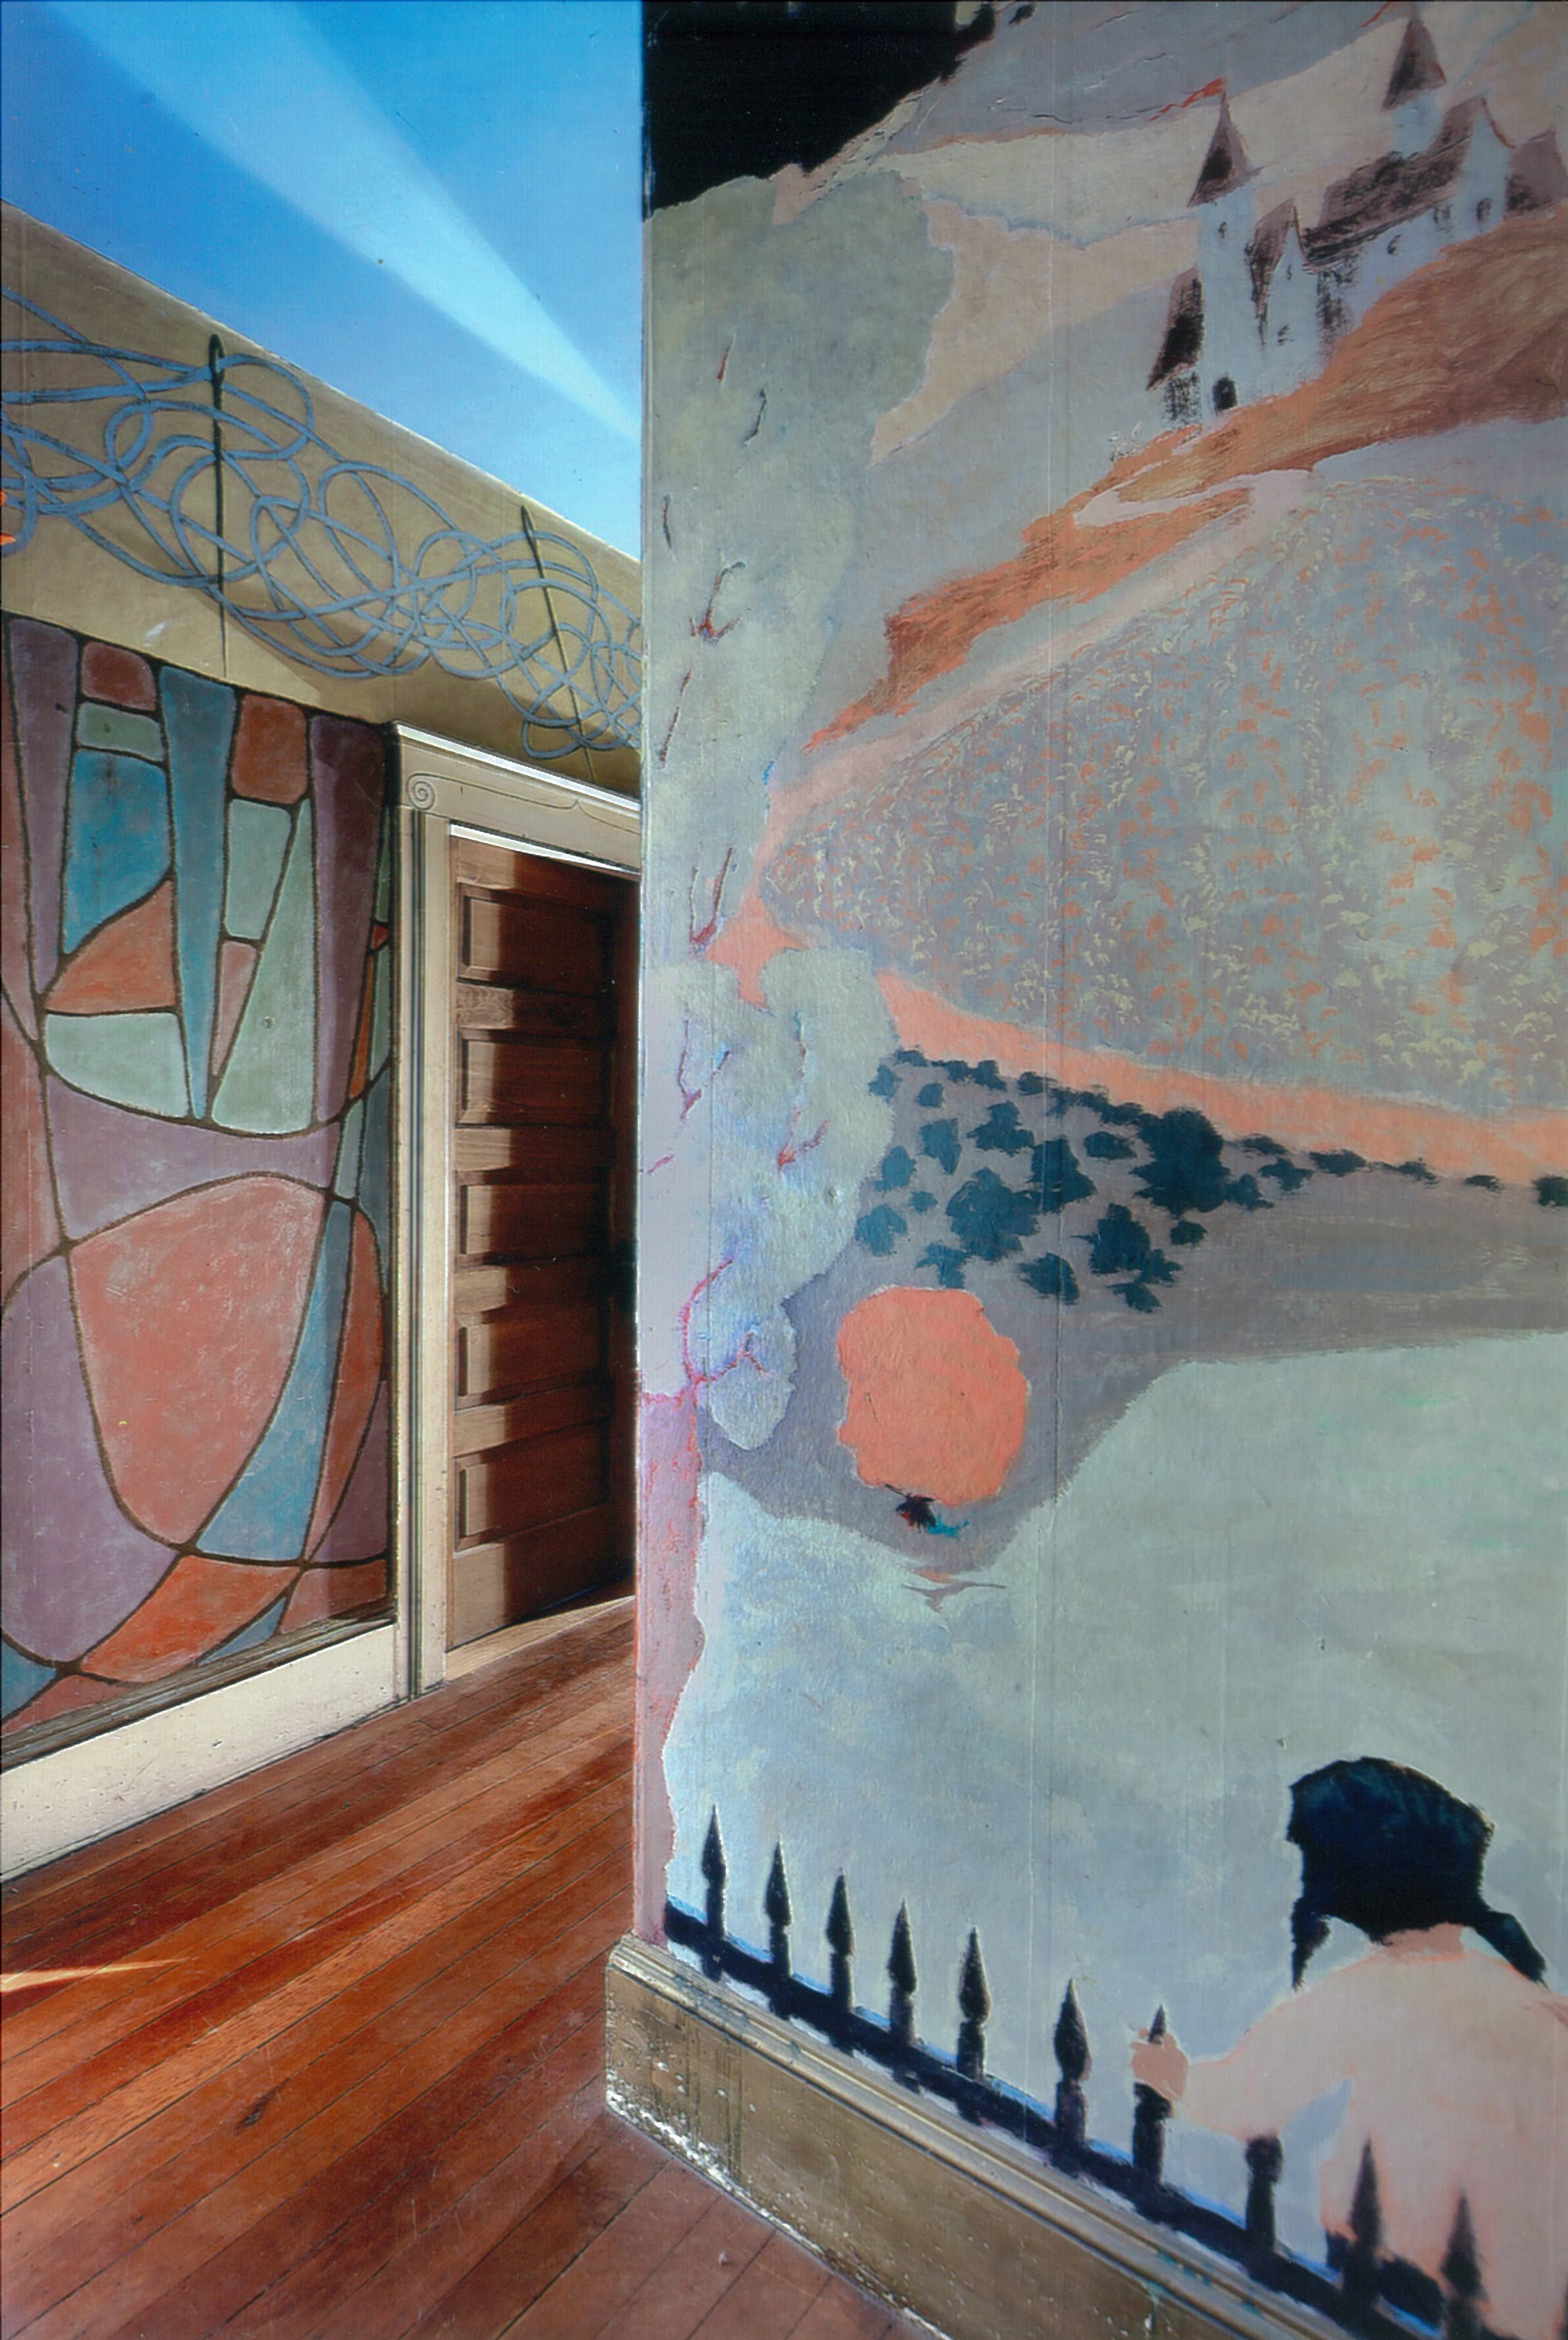 Jess hallway mural continued, picturing a girl looking over an iron fence at pale green fields and a distant castle atop a mountain.